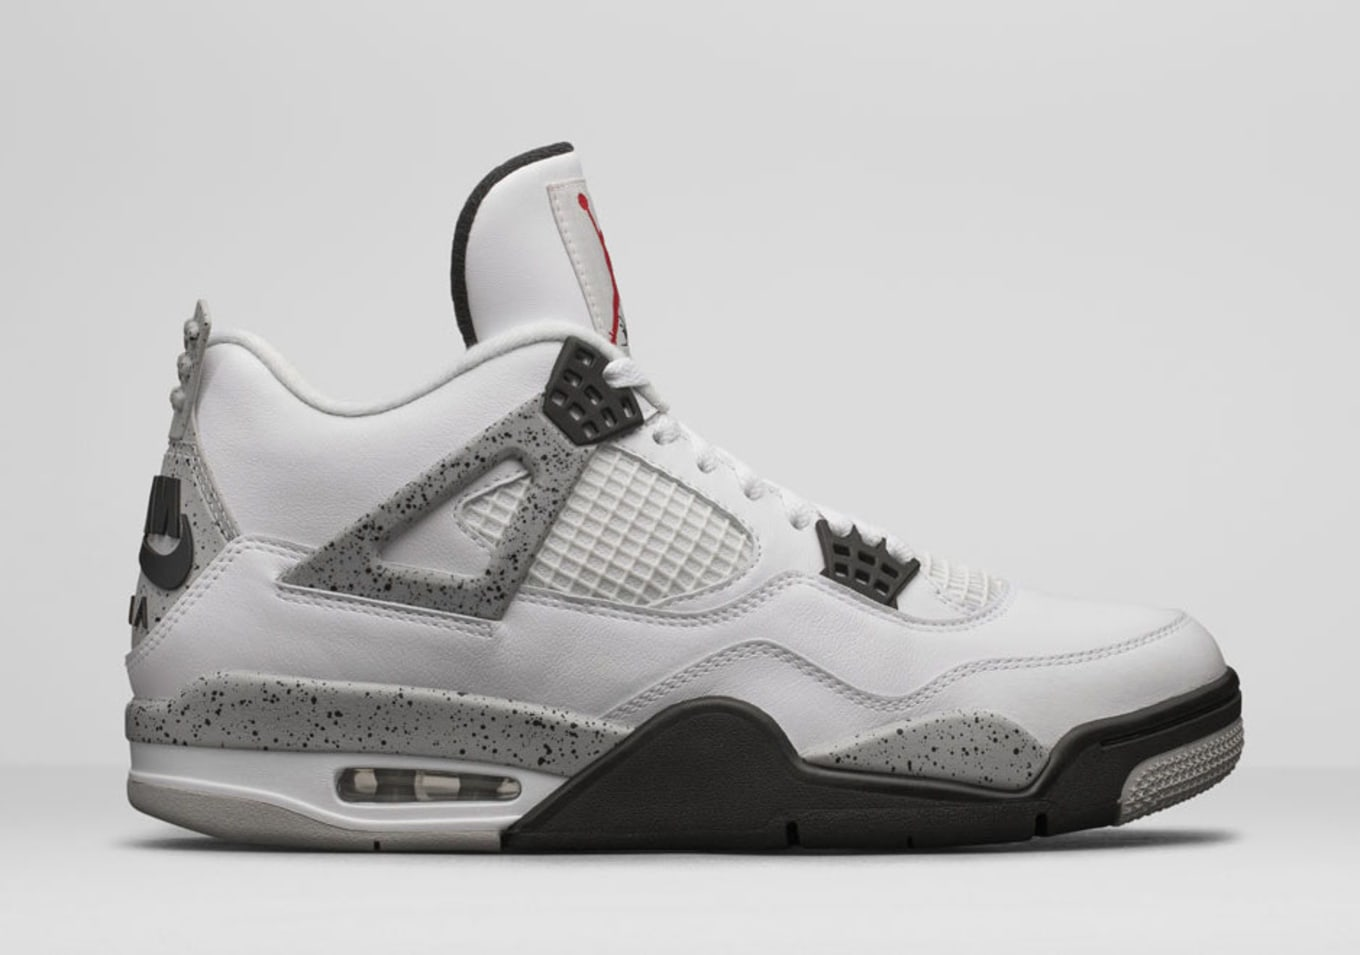 b152561e1aad73 Air Jordan 4 Retro